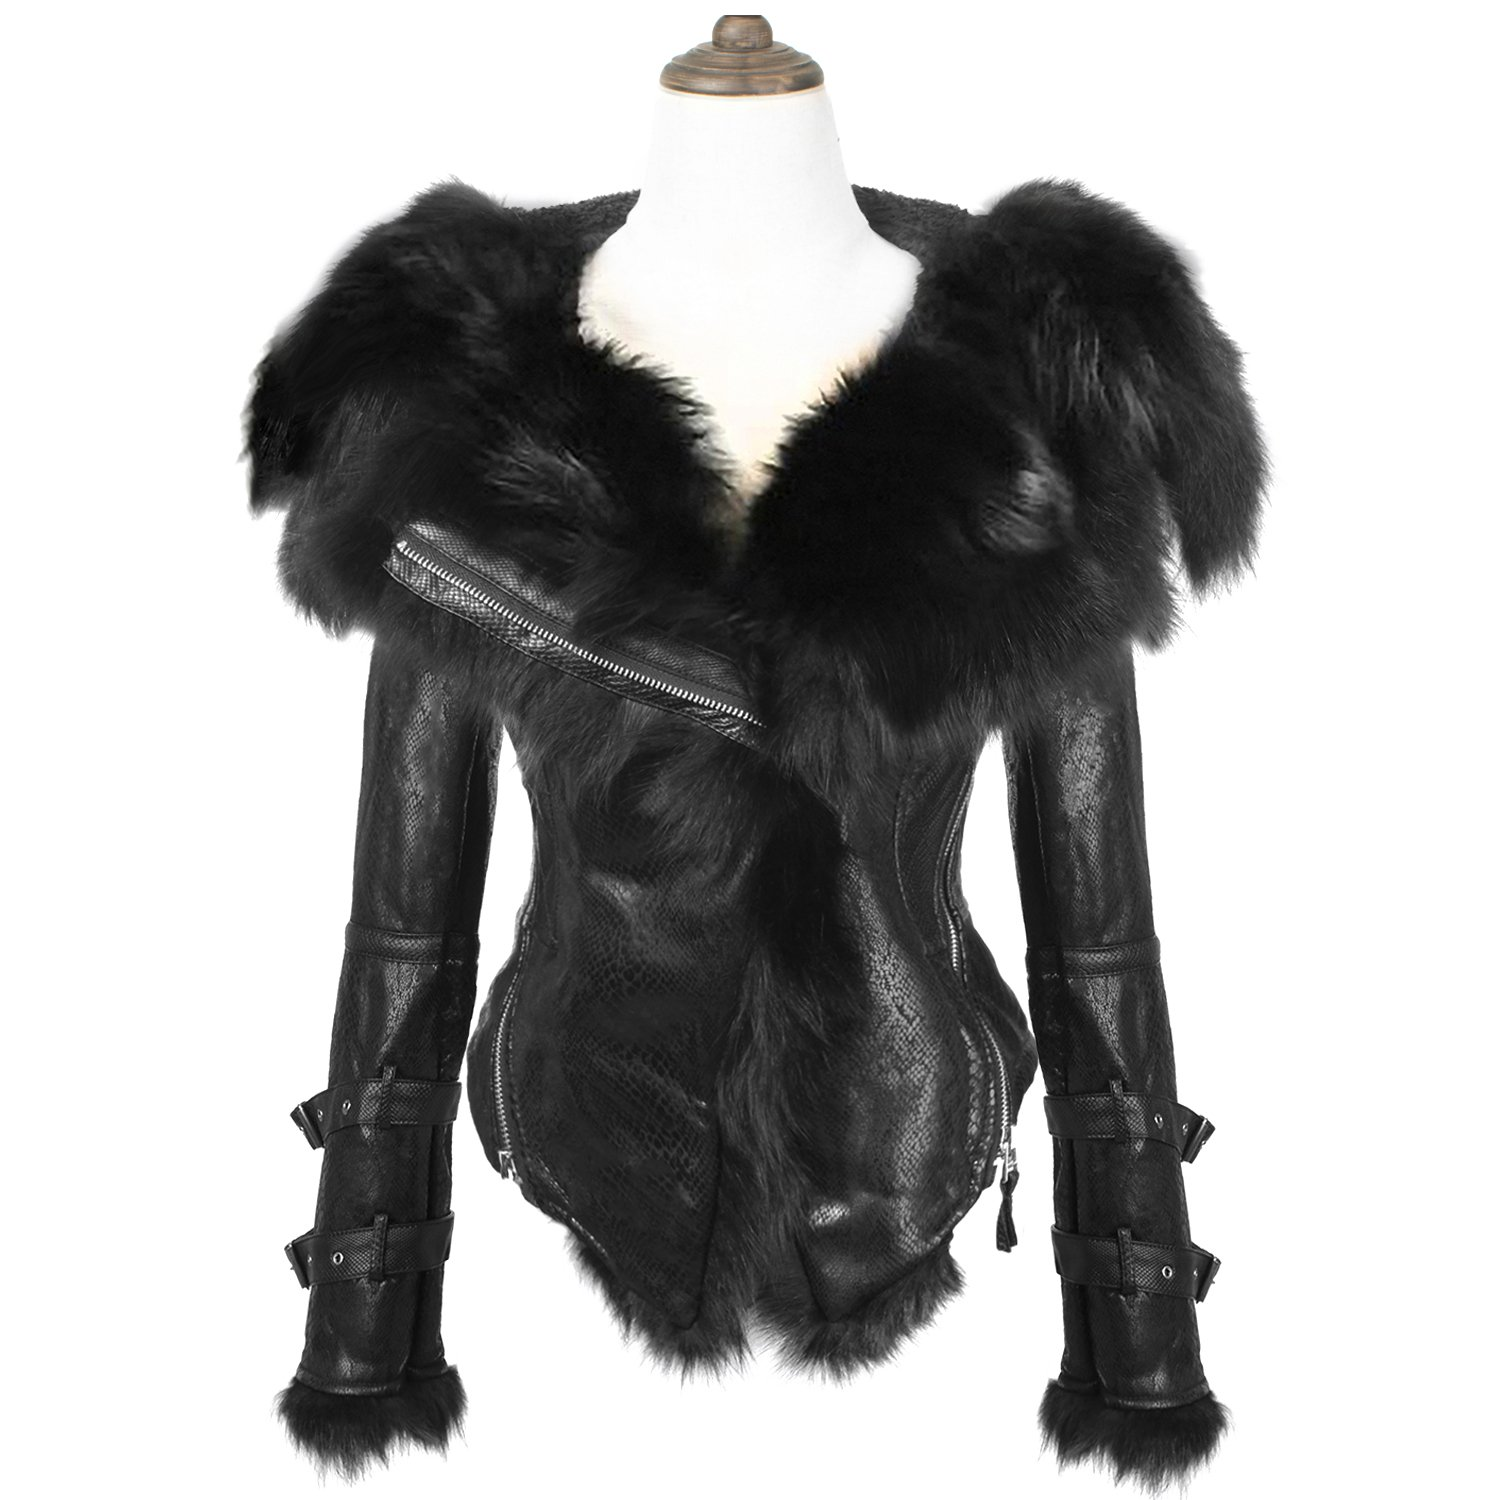 She'sModa Natural Real Fox Fur Collar Hoodie Slim Fit Women's Zipper Fleece Moto Jacket Winter Coat Black S